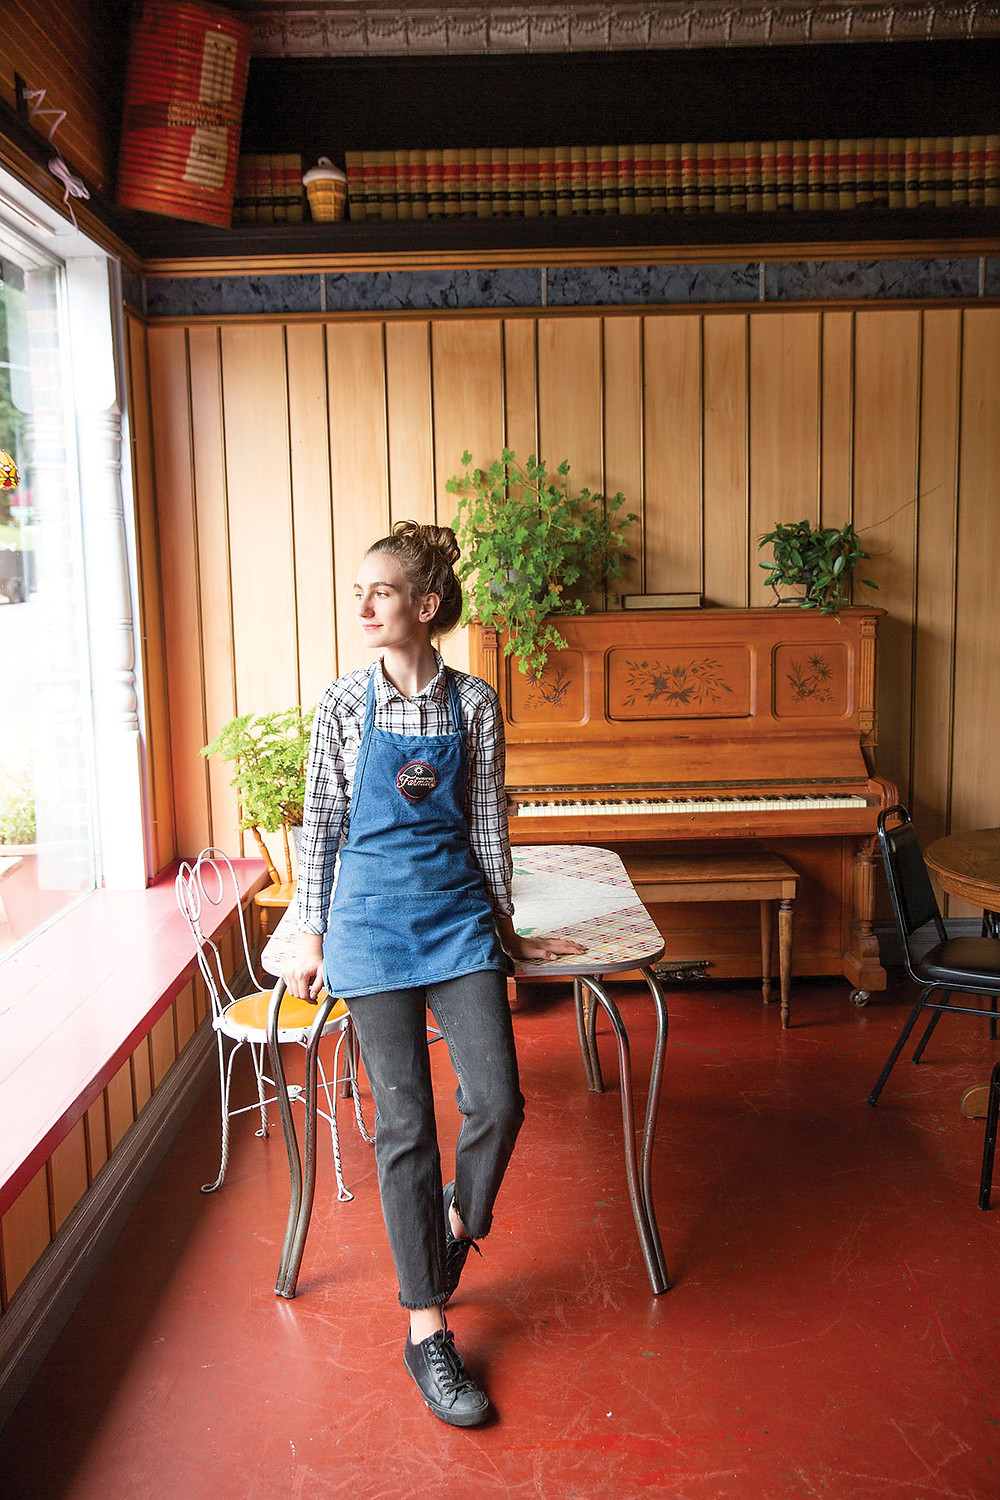 A young woman leans against a table looking out the large front windows, a player piano sets behind her